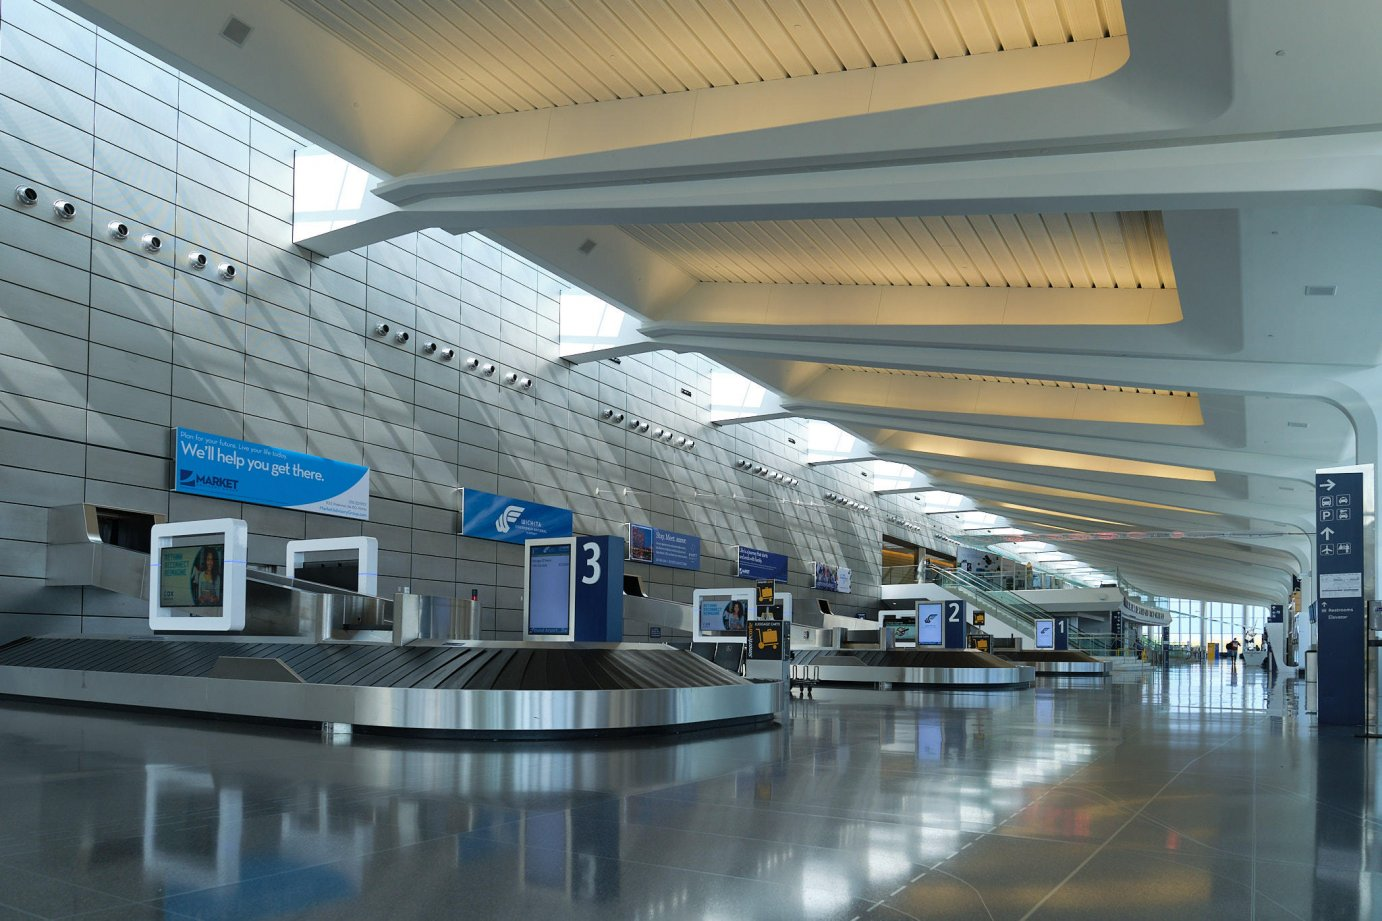 The terminal at Dwight D. Eisenhower Airport in Wichita sits mostly empty as the coronavirus dramatically decreases travel. (Photo by Brian Grimmett, Kansas News Service)